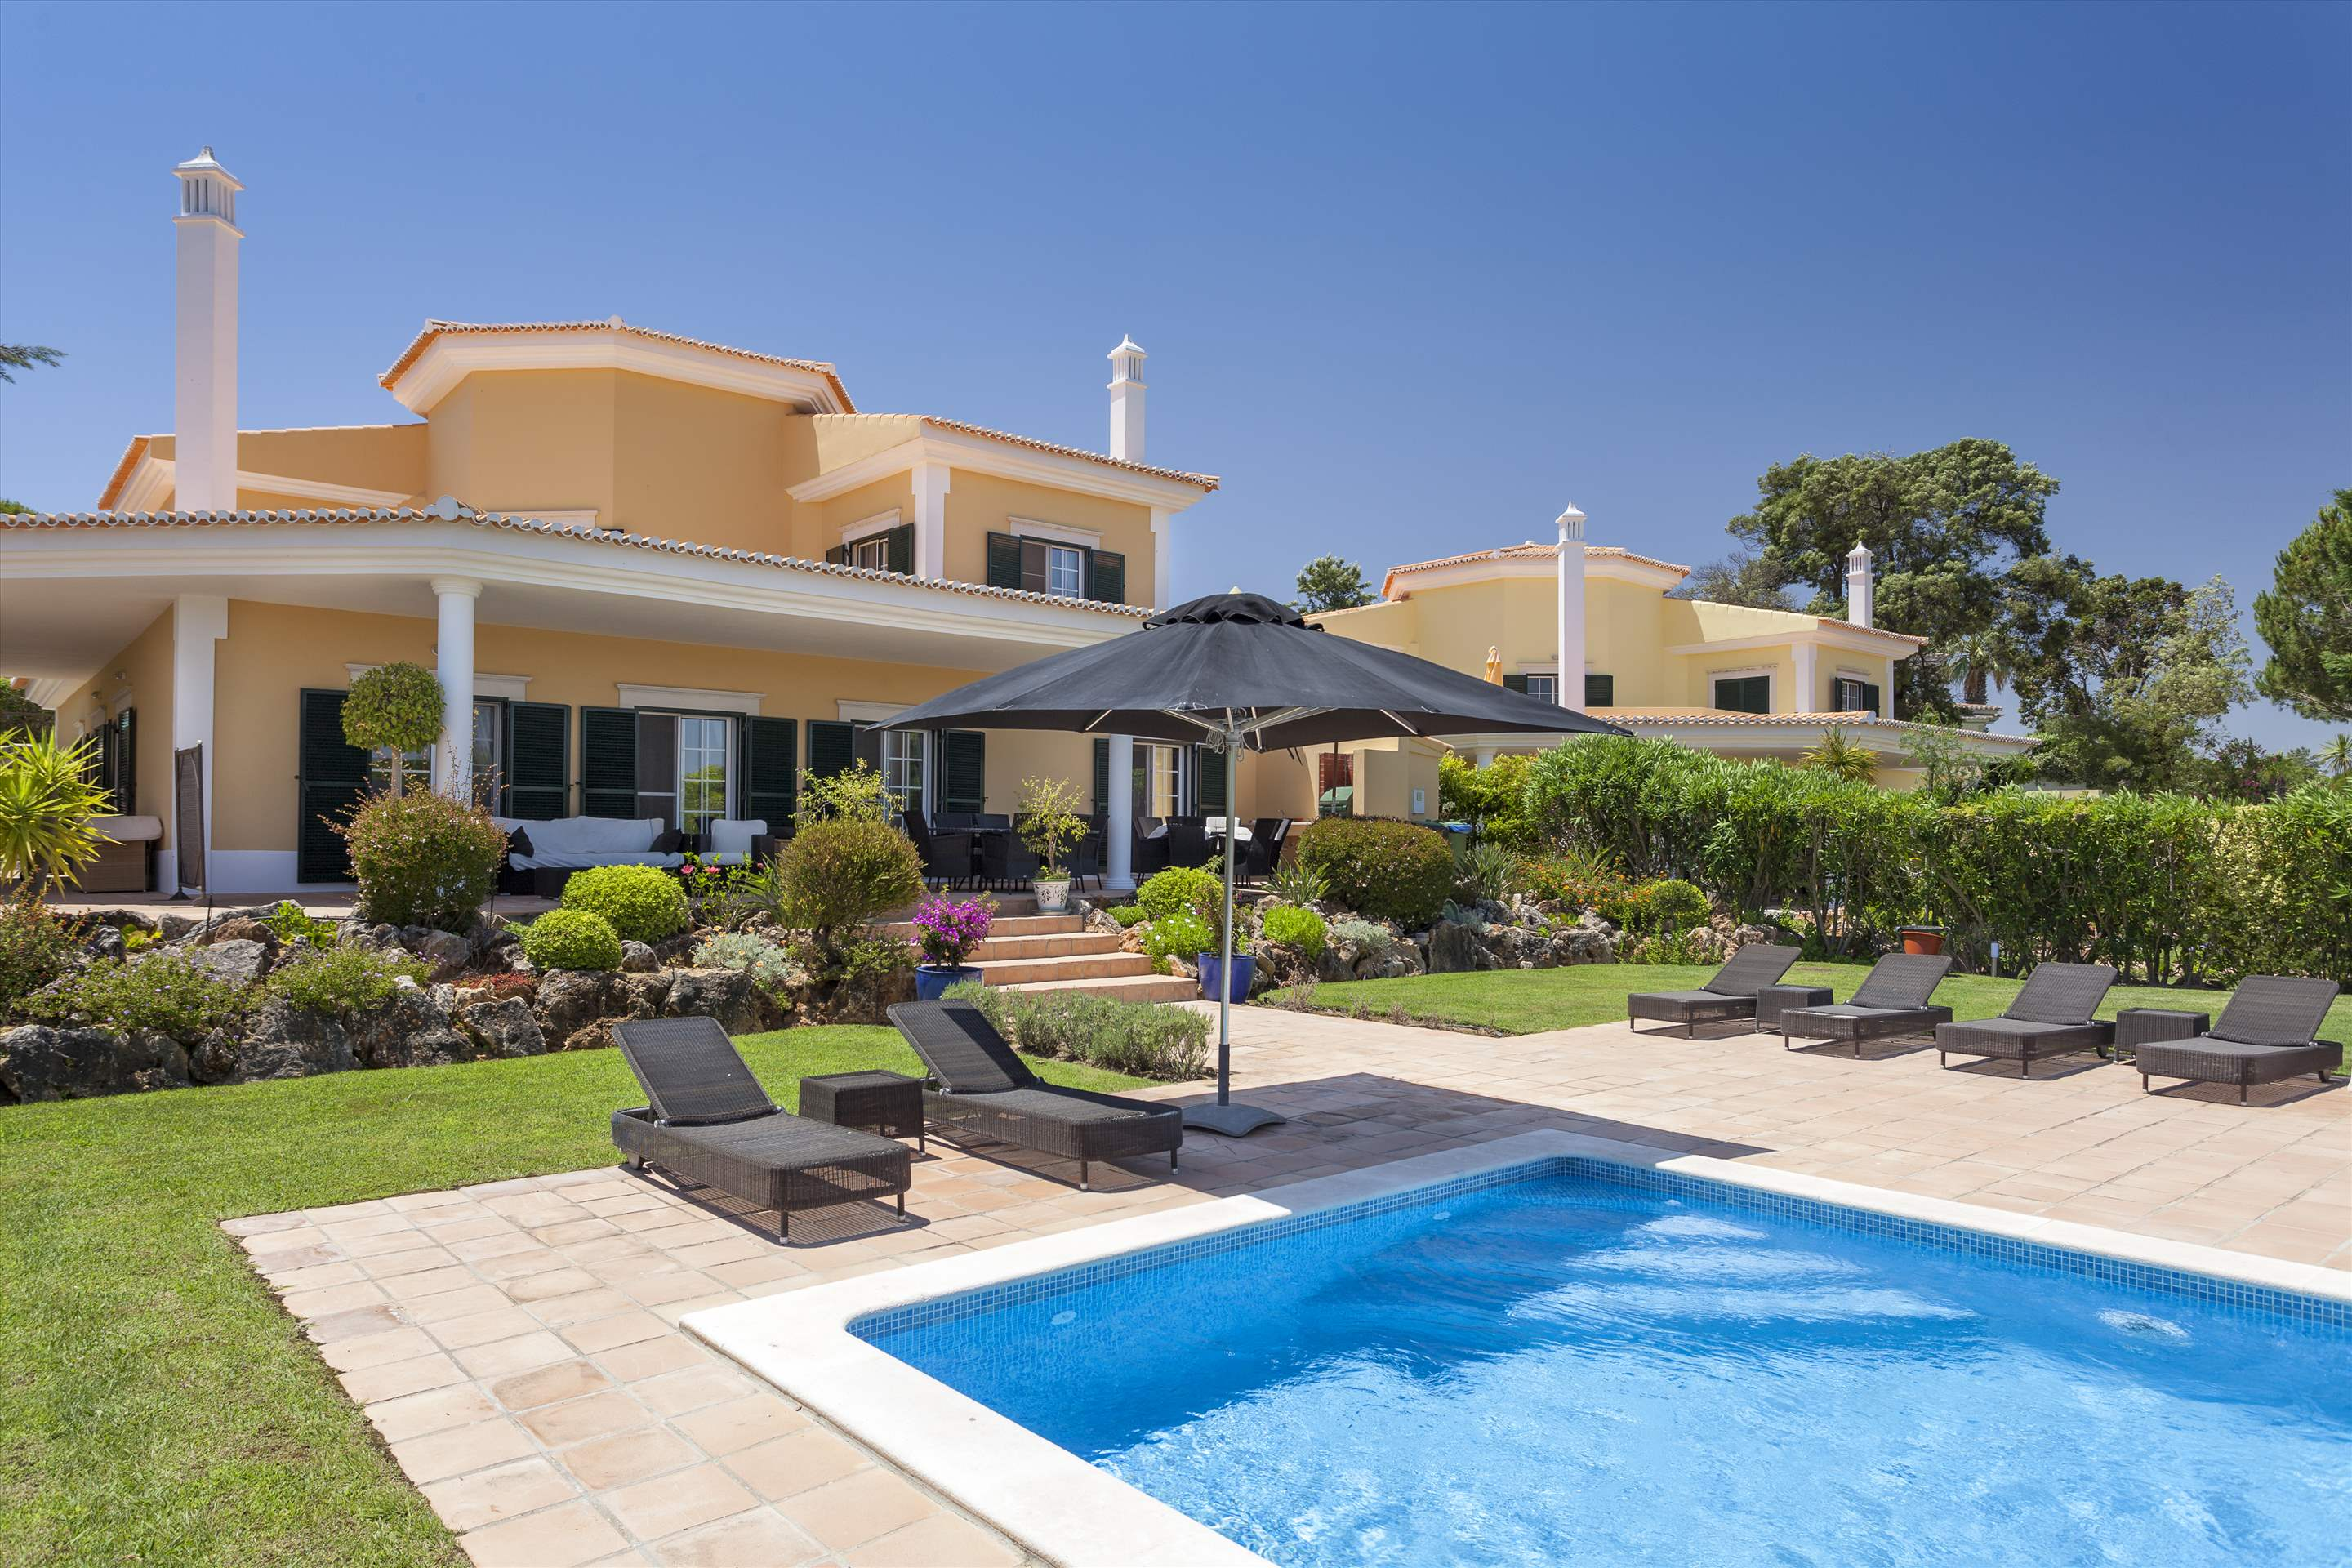 Martinhal Quinta Villa (4 Bedrooms), 4 bedroom villa in Martinhal Quinta Resort, Algarve Photo #12